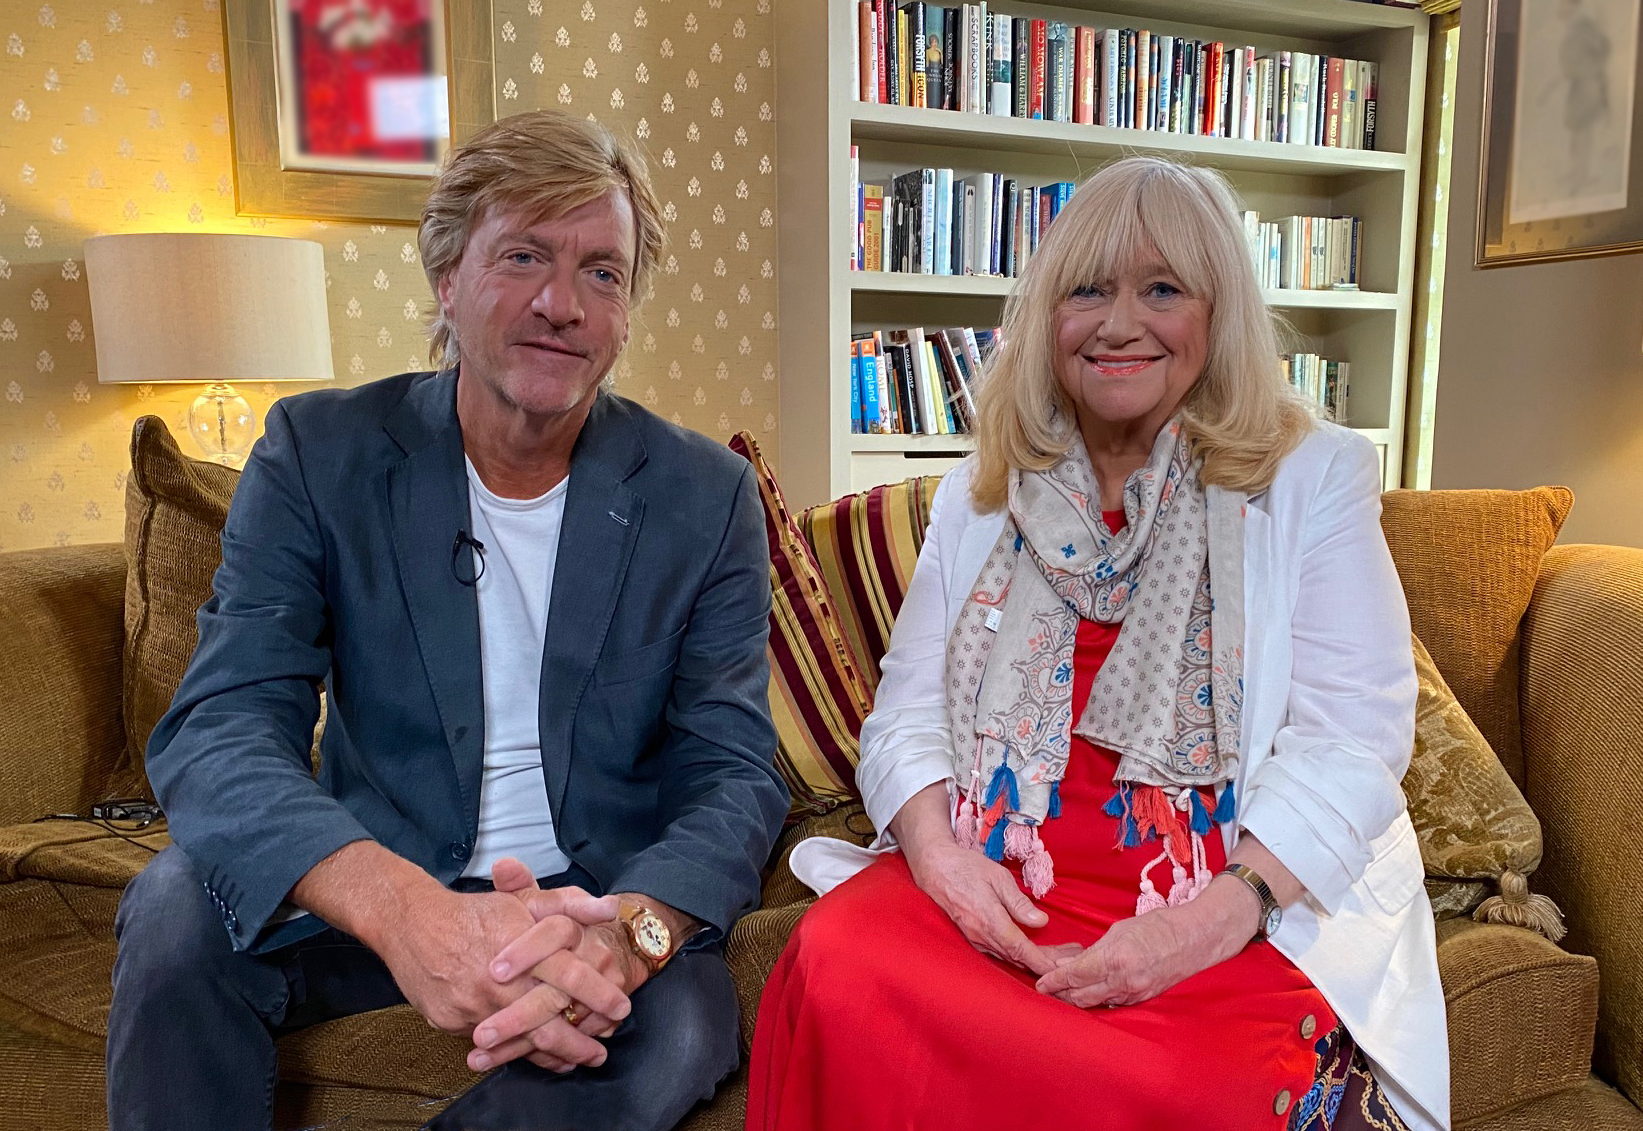 Richard and Judy confirm line-up of stars for their new Channel 4 show